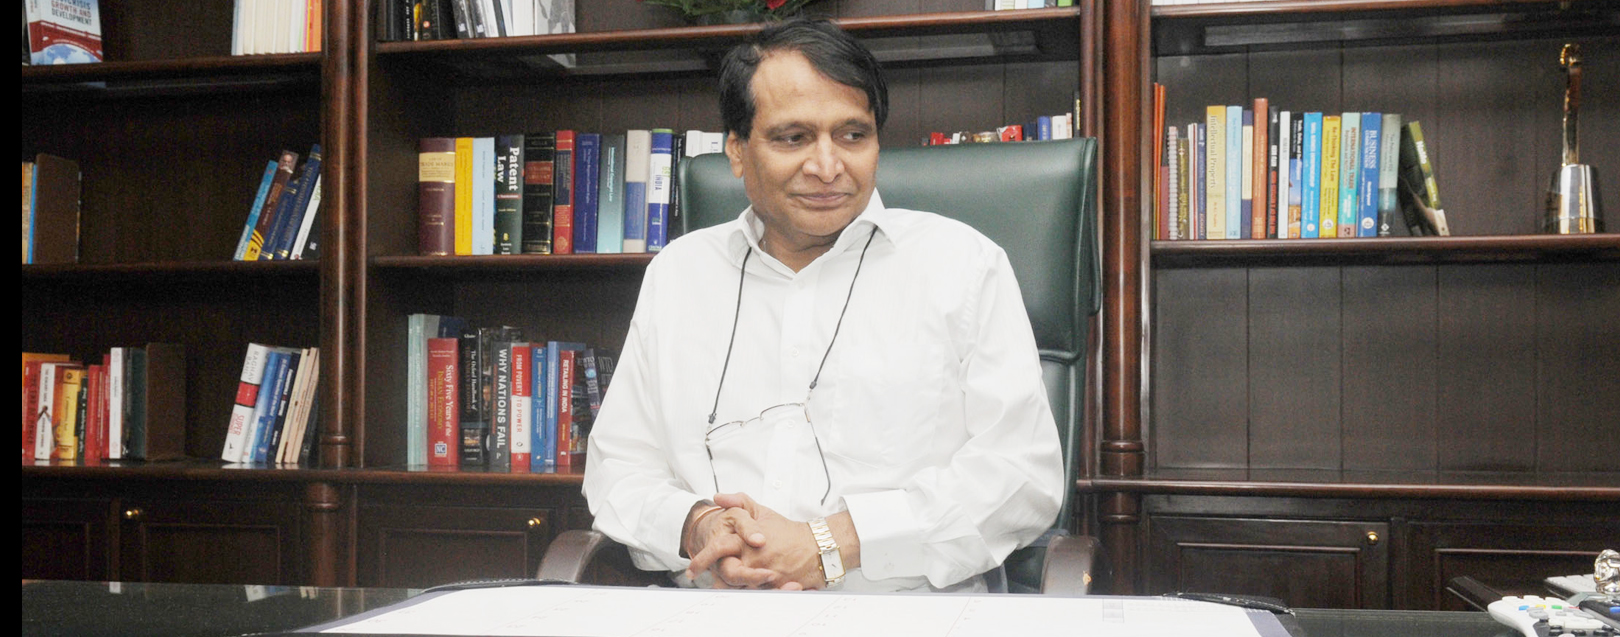 Govt's full support to start-ups, created a Rs.10k cr corpus: Prabhu